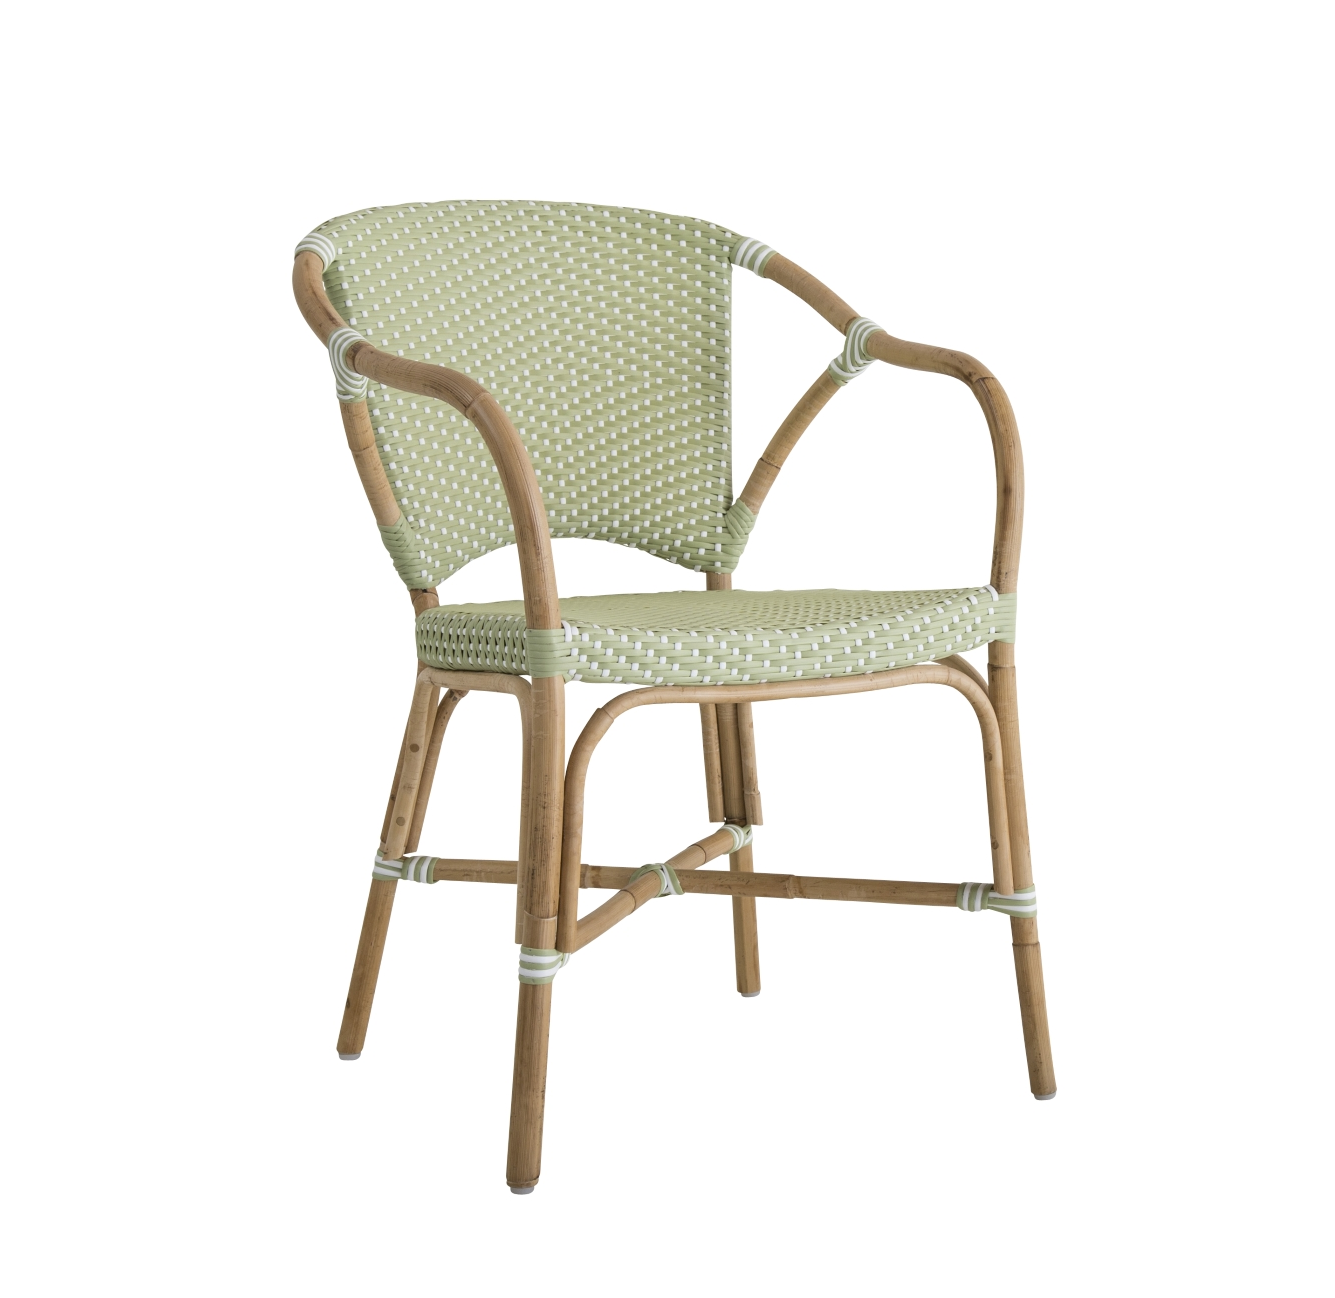 Valerie chair karm Affäire lime, Sika-design